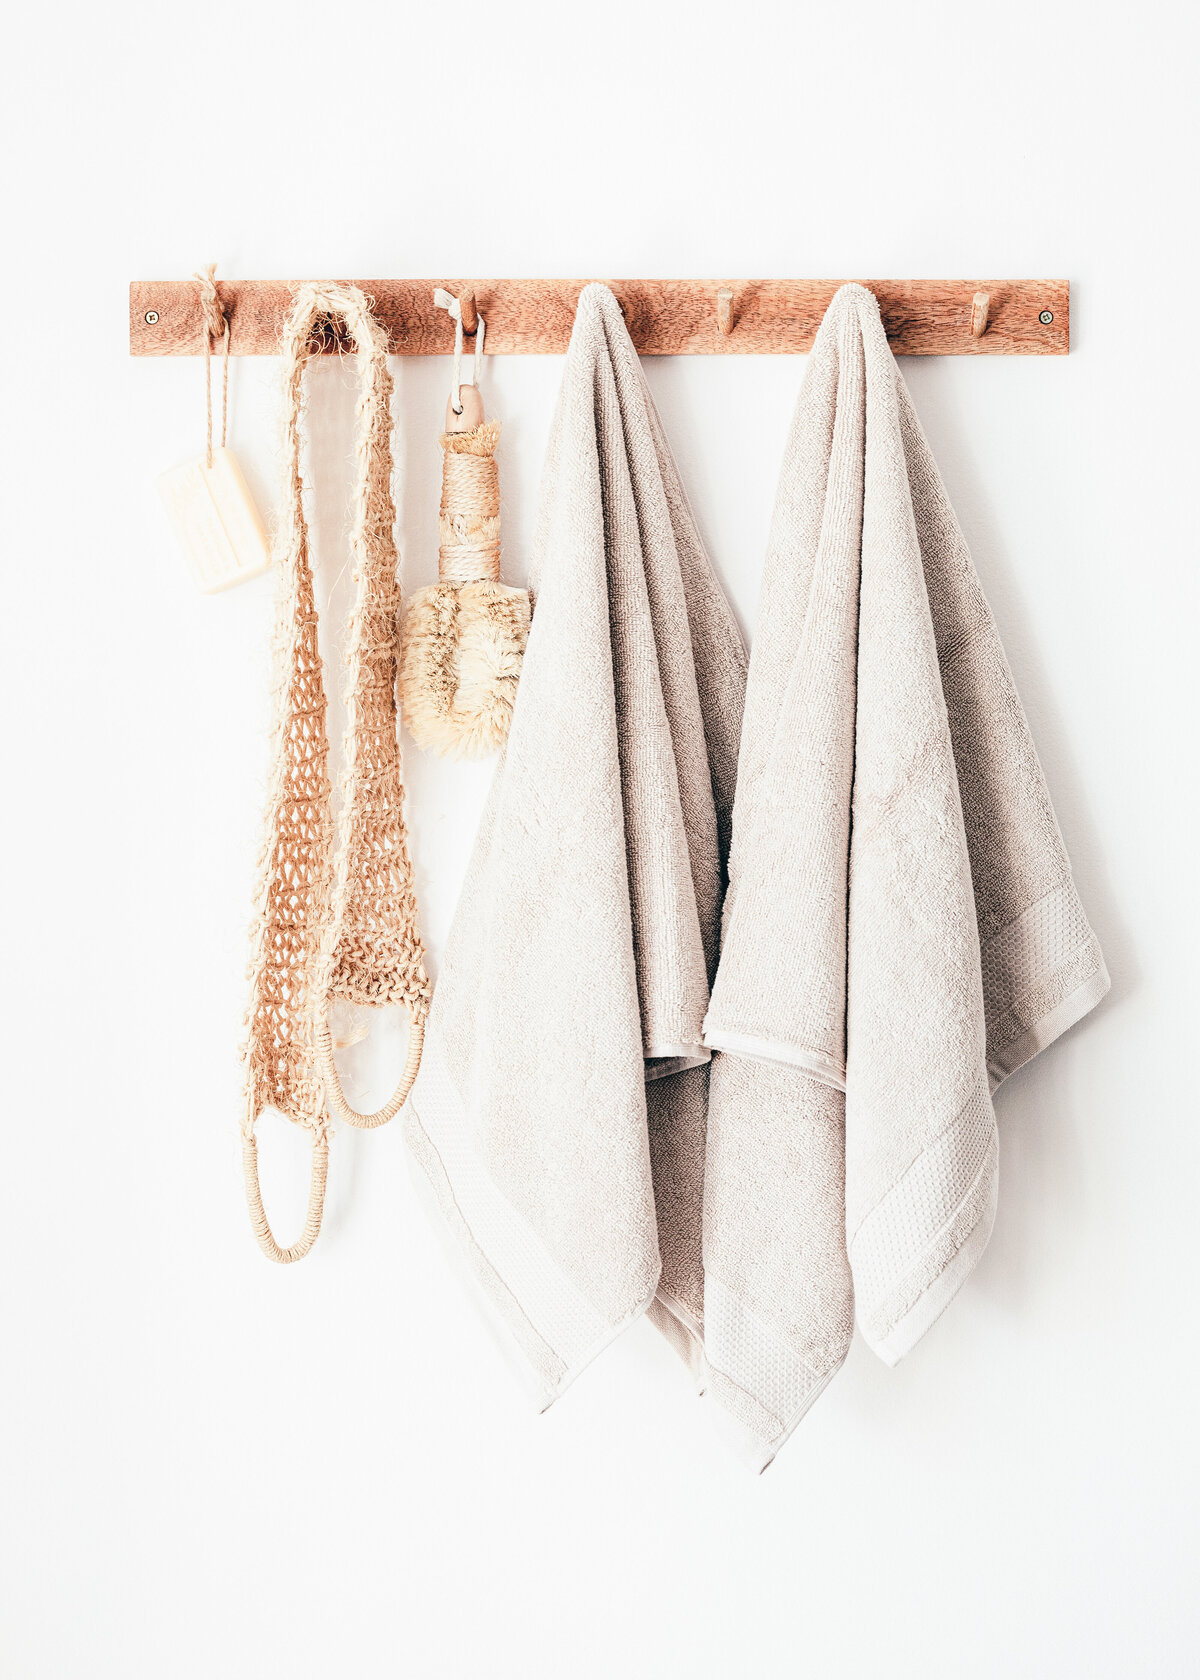 A flannel and loofah hang from a wooden rack against a white wall.